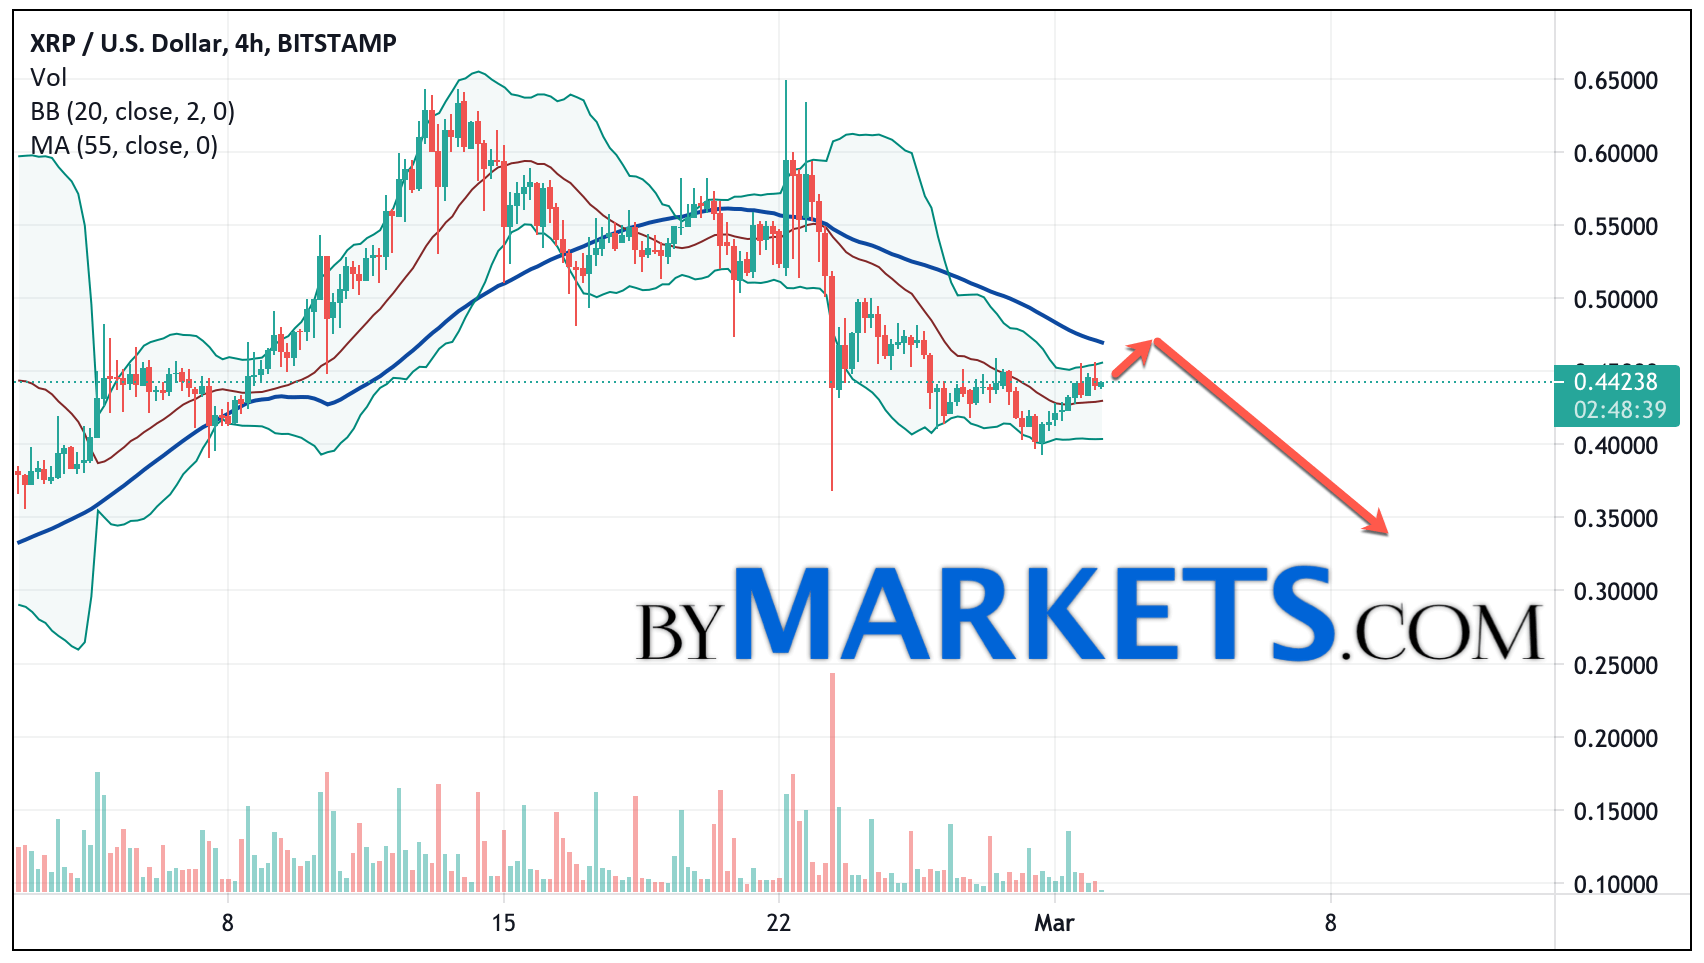 Ripple (XRP/USD) forecast and analysis on March 3, 2021Ripple (XRP/USD) forecast and analysis on March 3, 2021